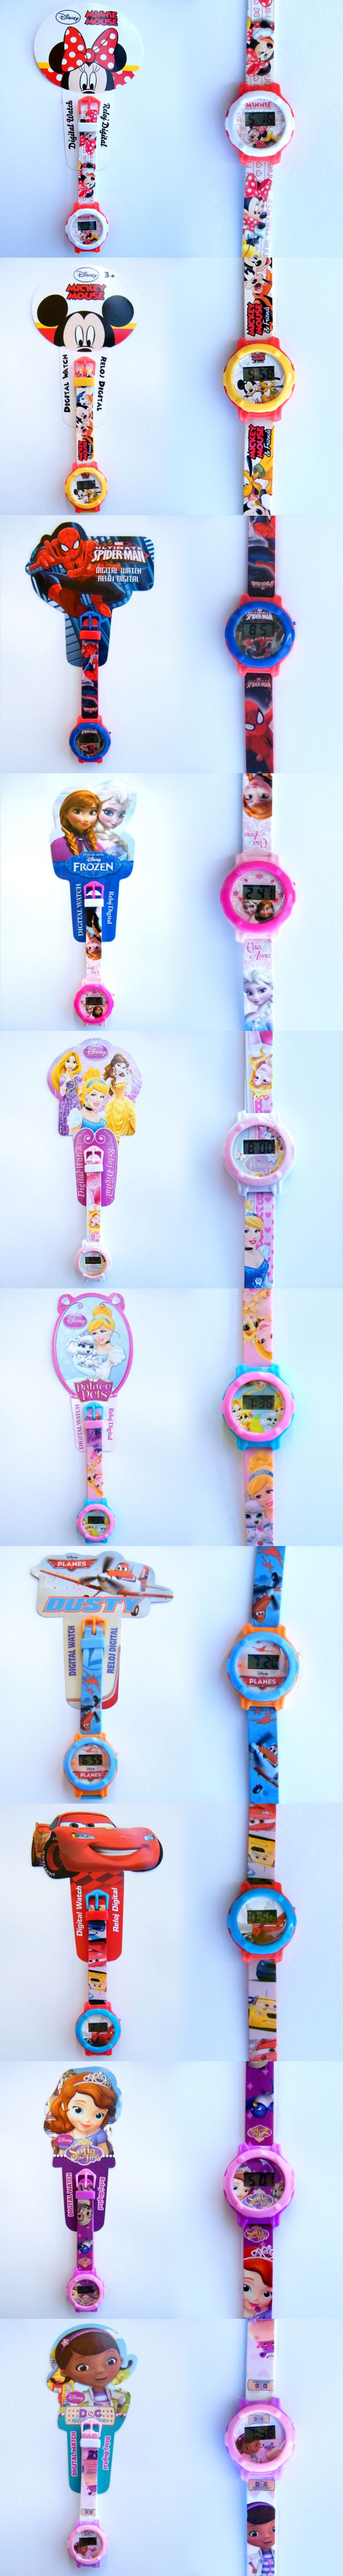 Original DISNEY watches for kids; Mickey, Minnie, Princesses, Cars, Spiderman, Sofia, Frozen, Doc McStuffins